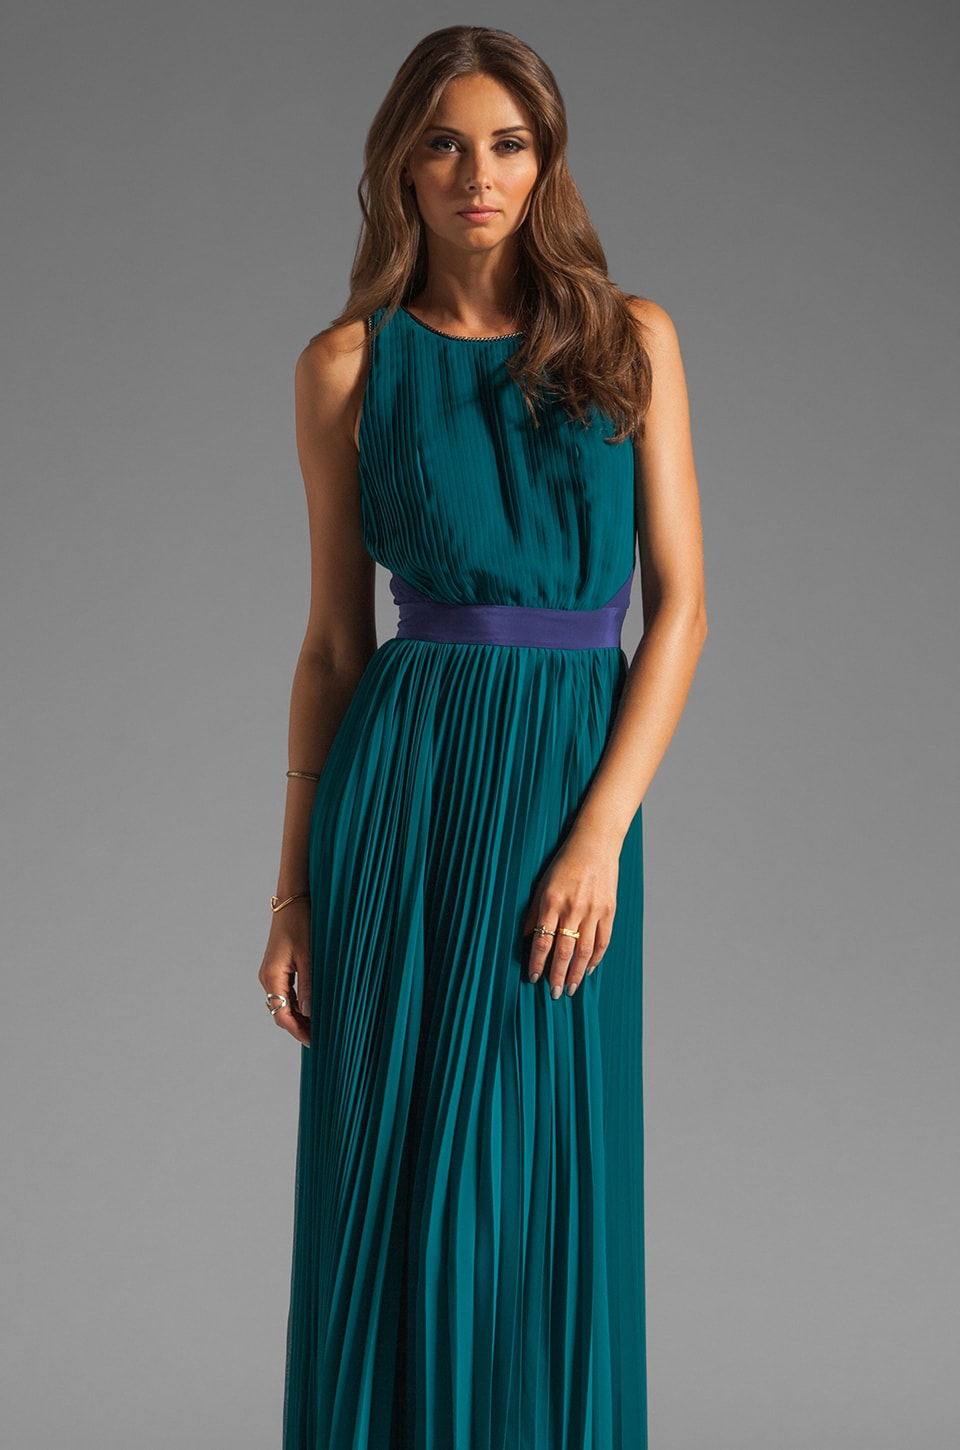 Halston Heritage Sunburst Pleated Chiffon Gown in Atlantic/Astral Blue